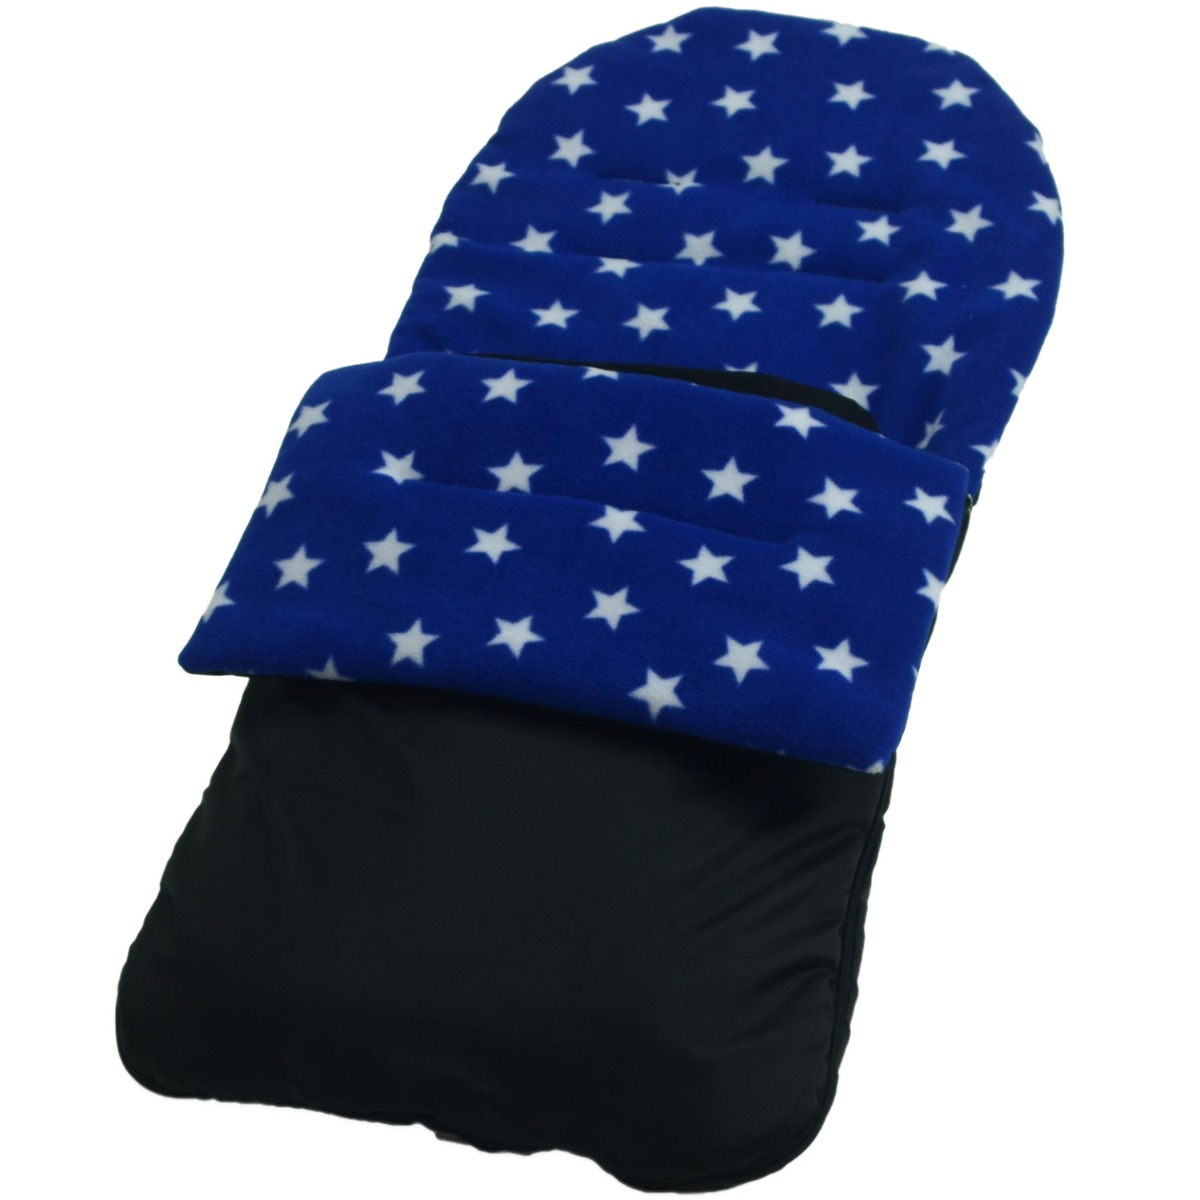 Universal-Fleece-Pushchair-Footmuff-Cosy-Toes-Fits-All-Pushchairs-Prams thumbnail 20